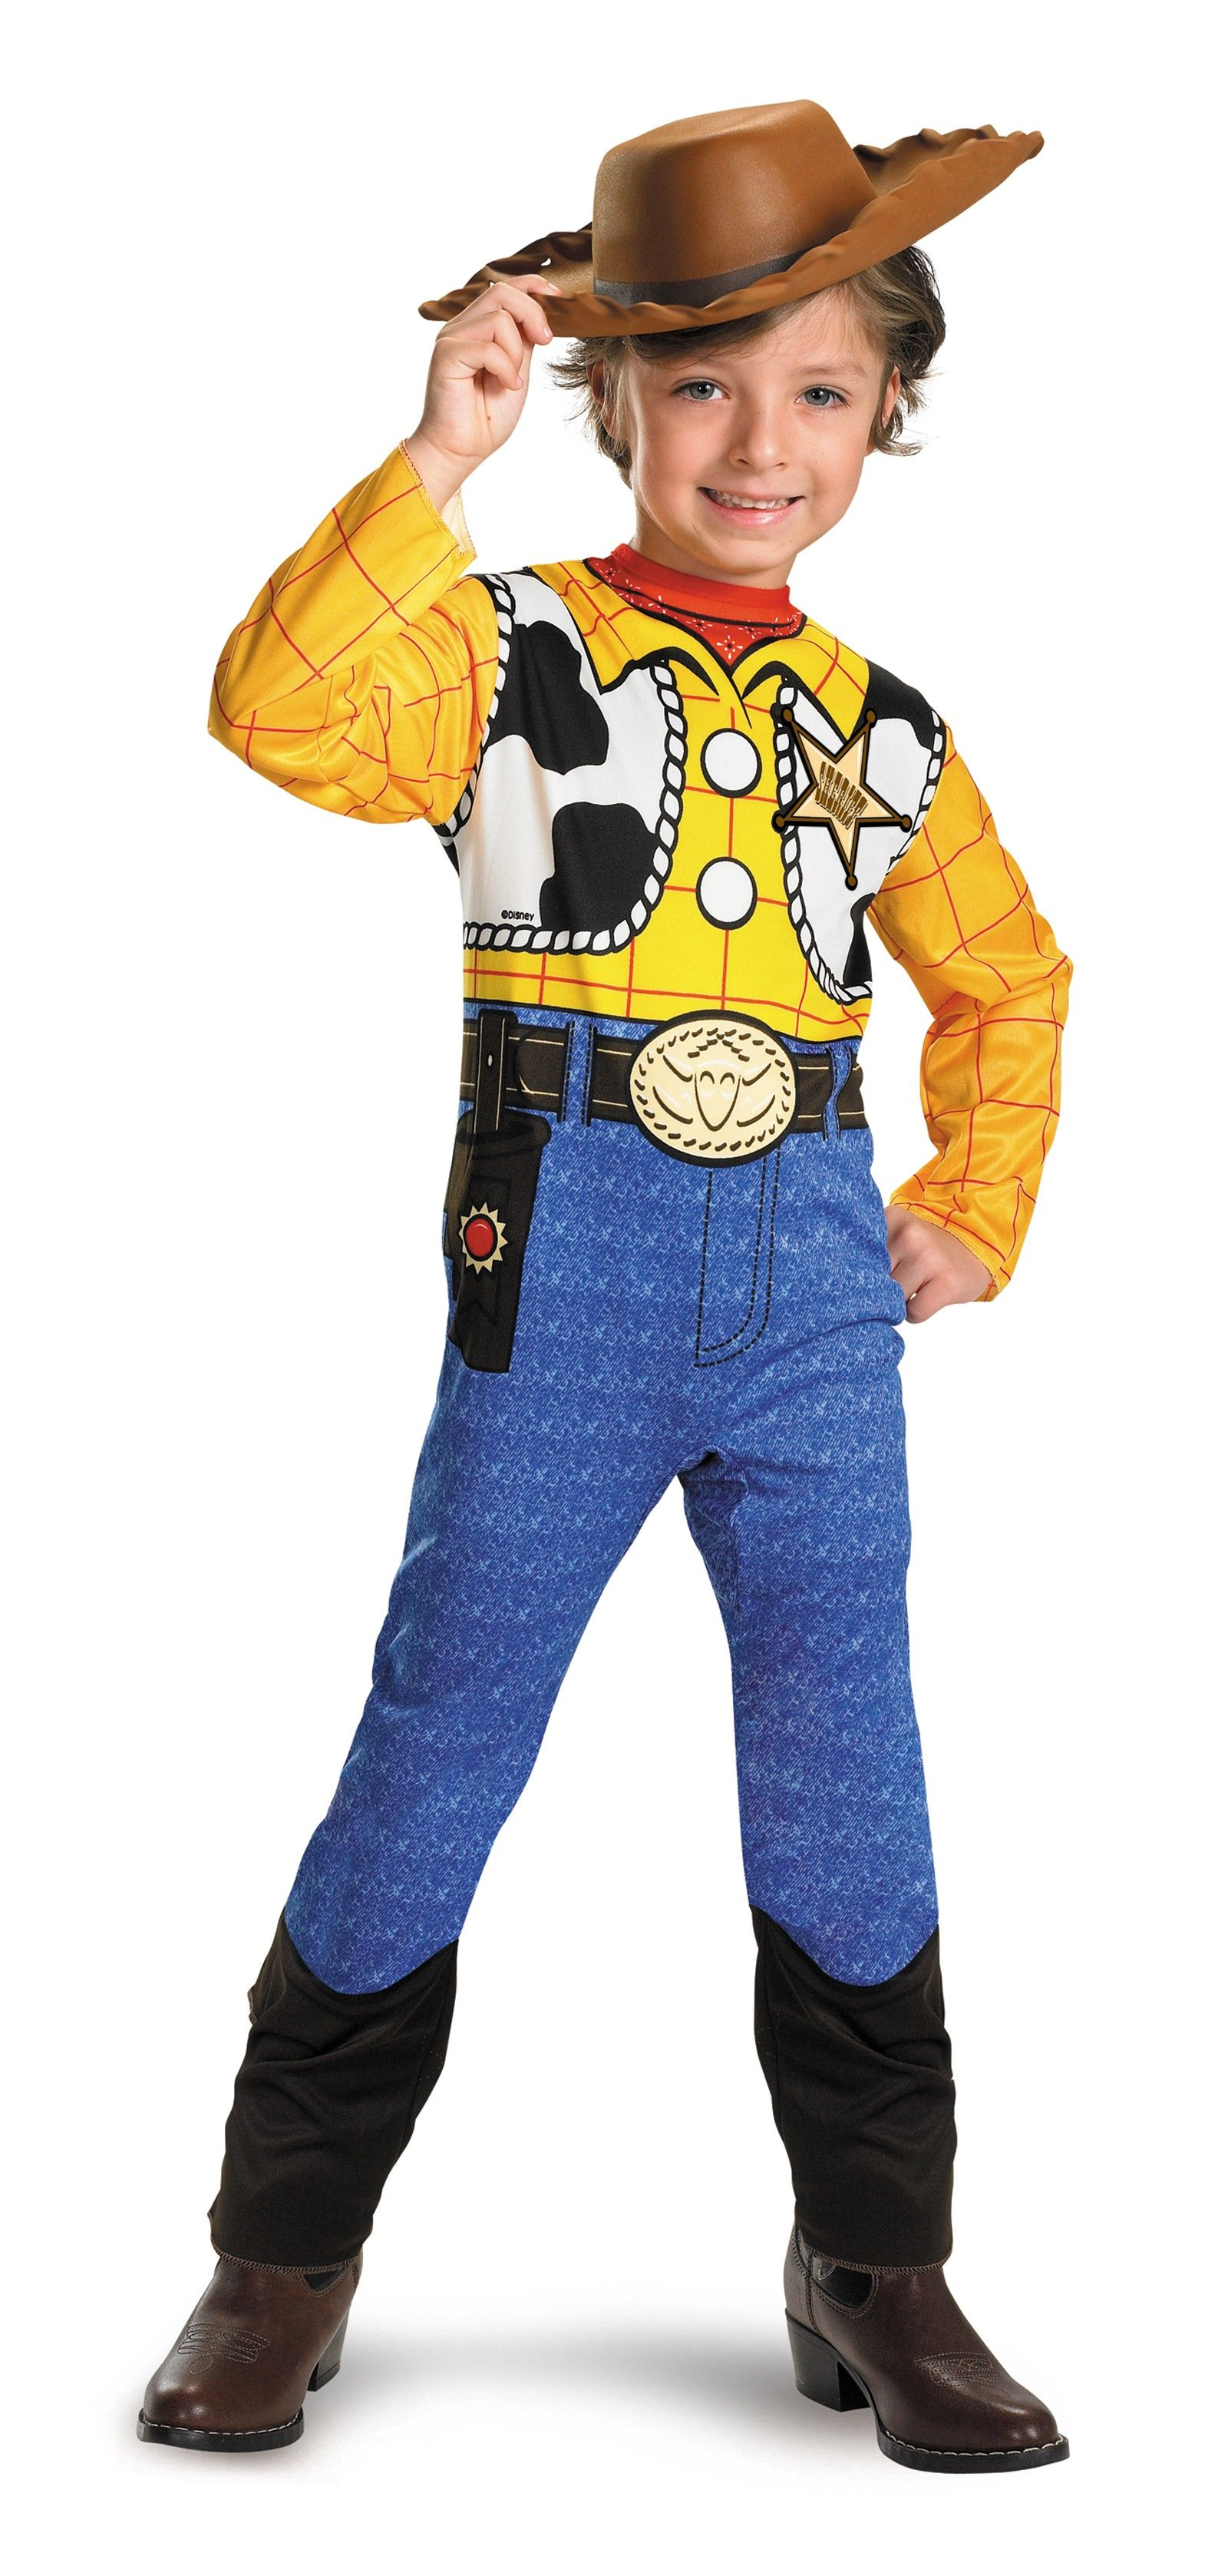 Toy Story - Woody Classic Toddler / Child Costume   Disney ...